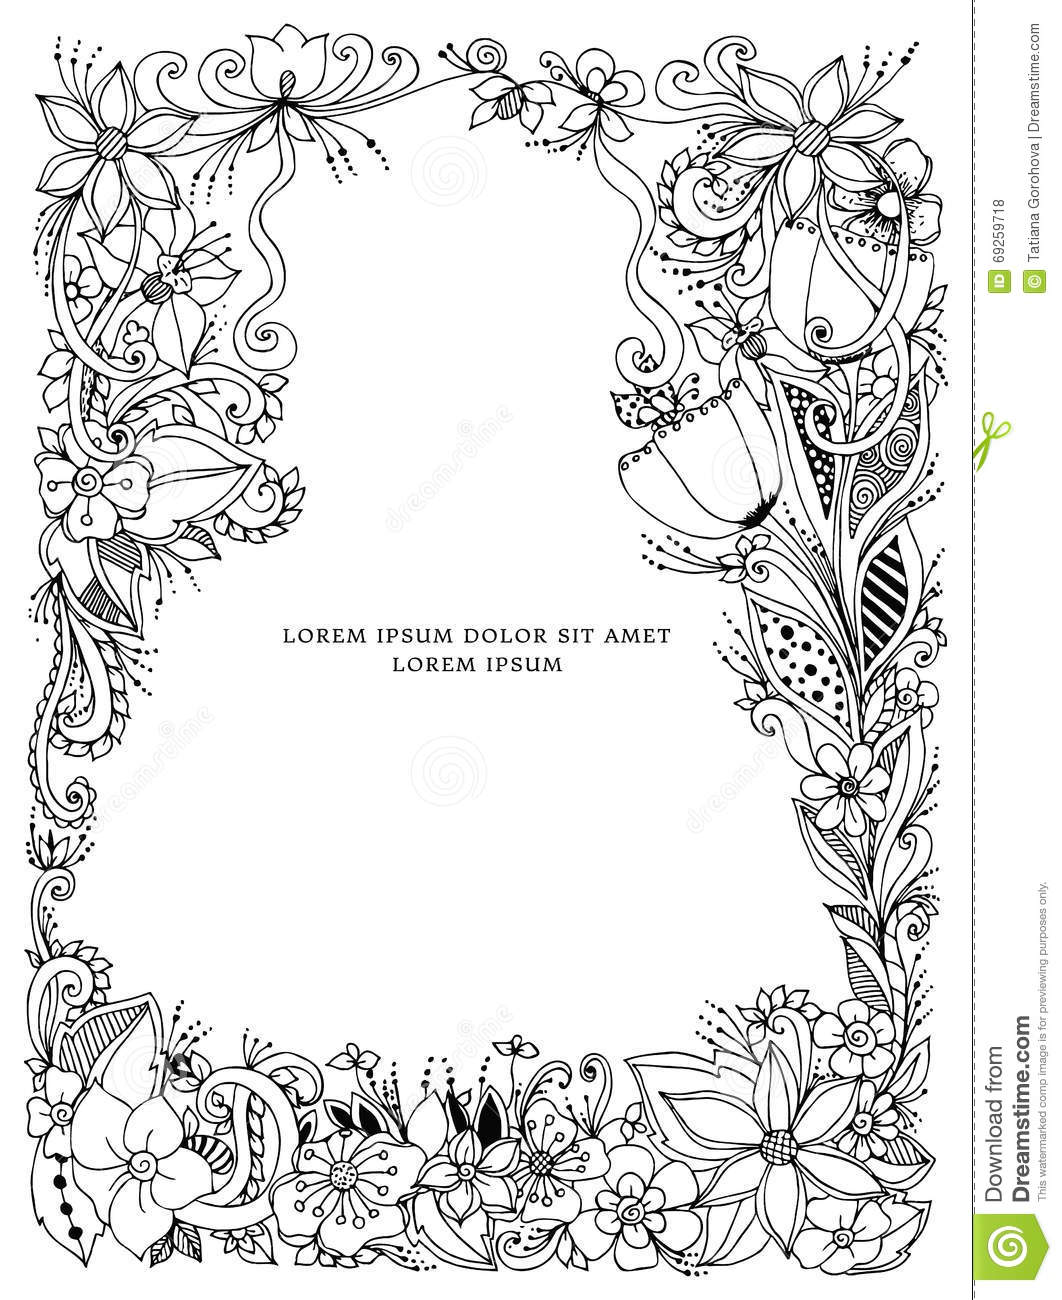 Lace Wedding Invitation as beautiful invitations example